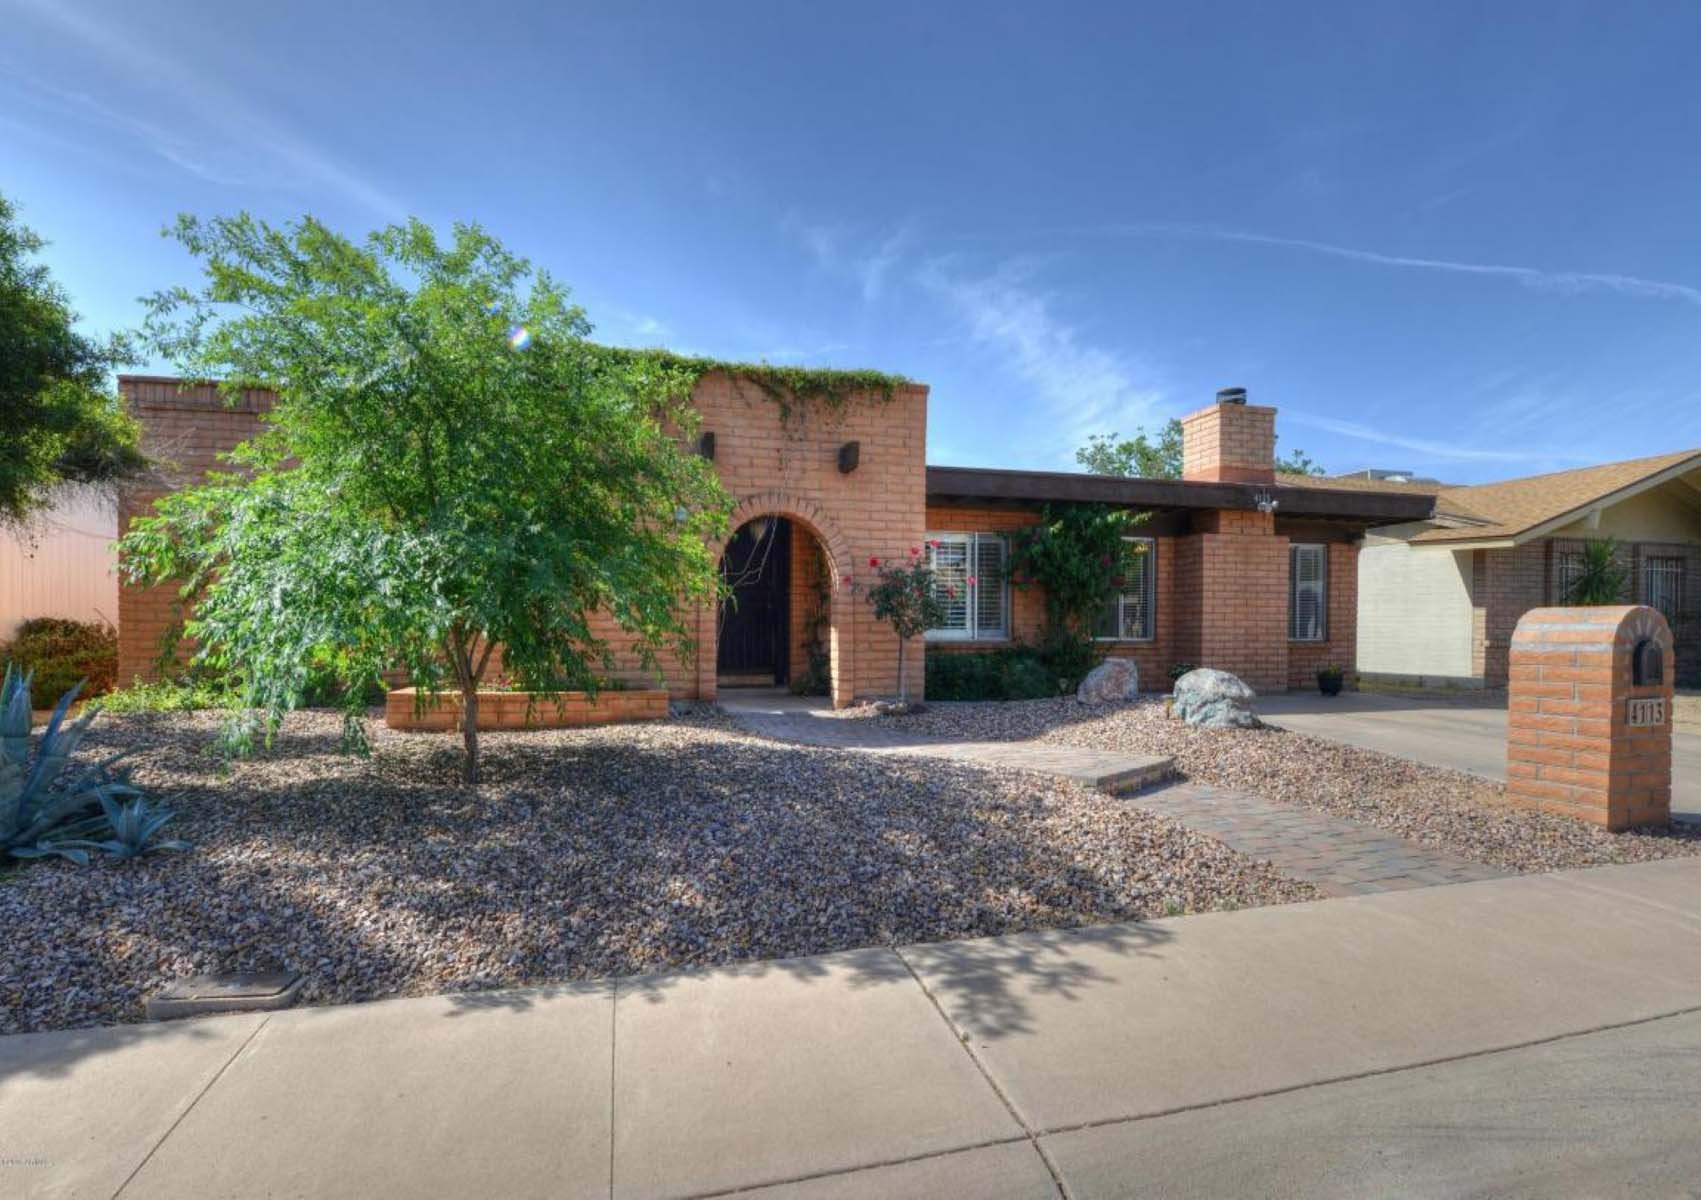 一戸建て のために 売買 アット Fantastic home situated in Phoenix yet in the desirable Scottsdale School Distri 4113 E COCHISE RD Phoenix, アリゾナ 85028 アメリカ合衆国